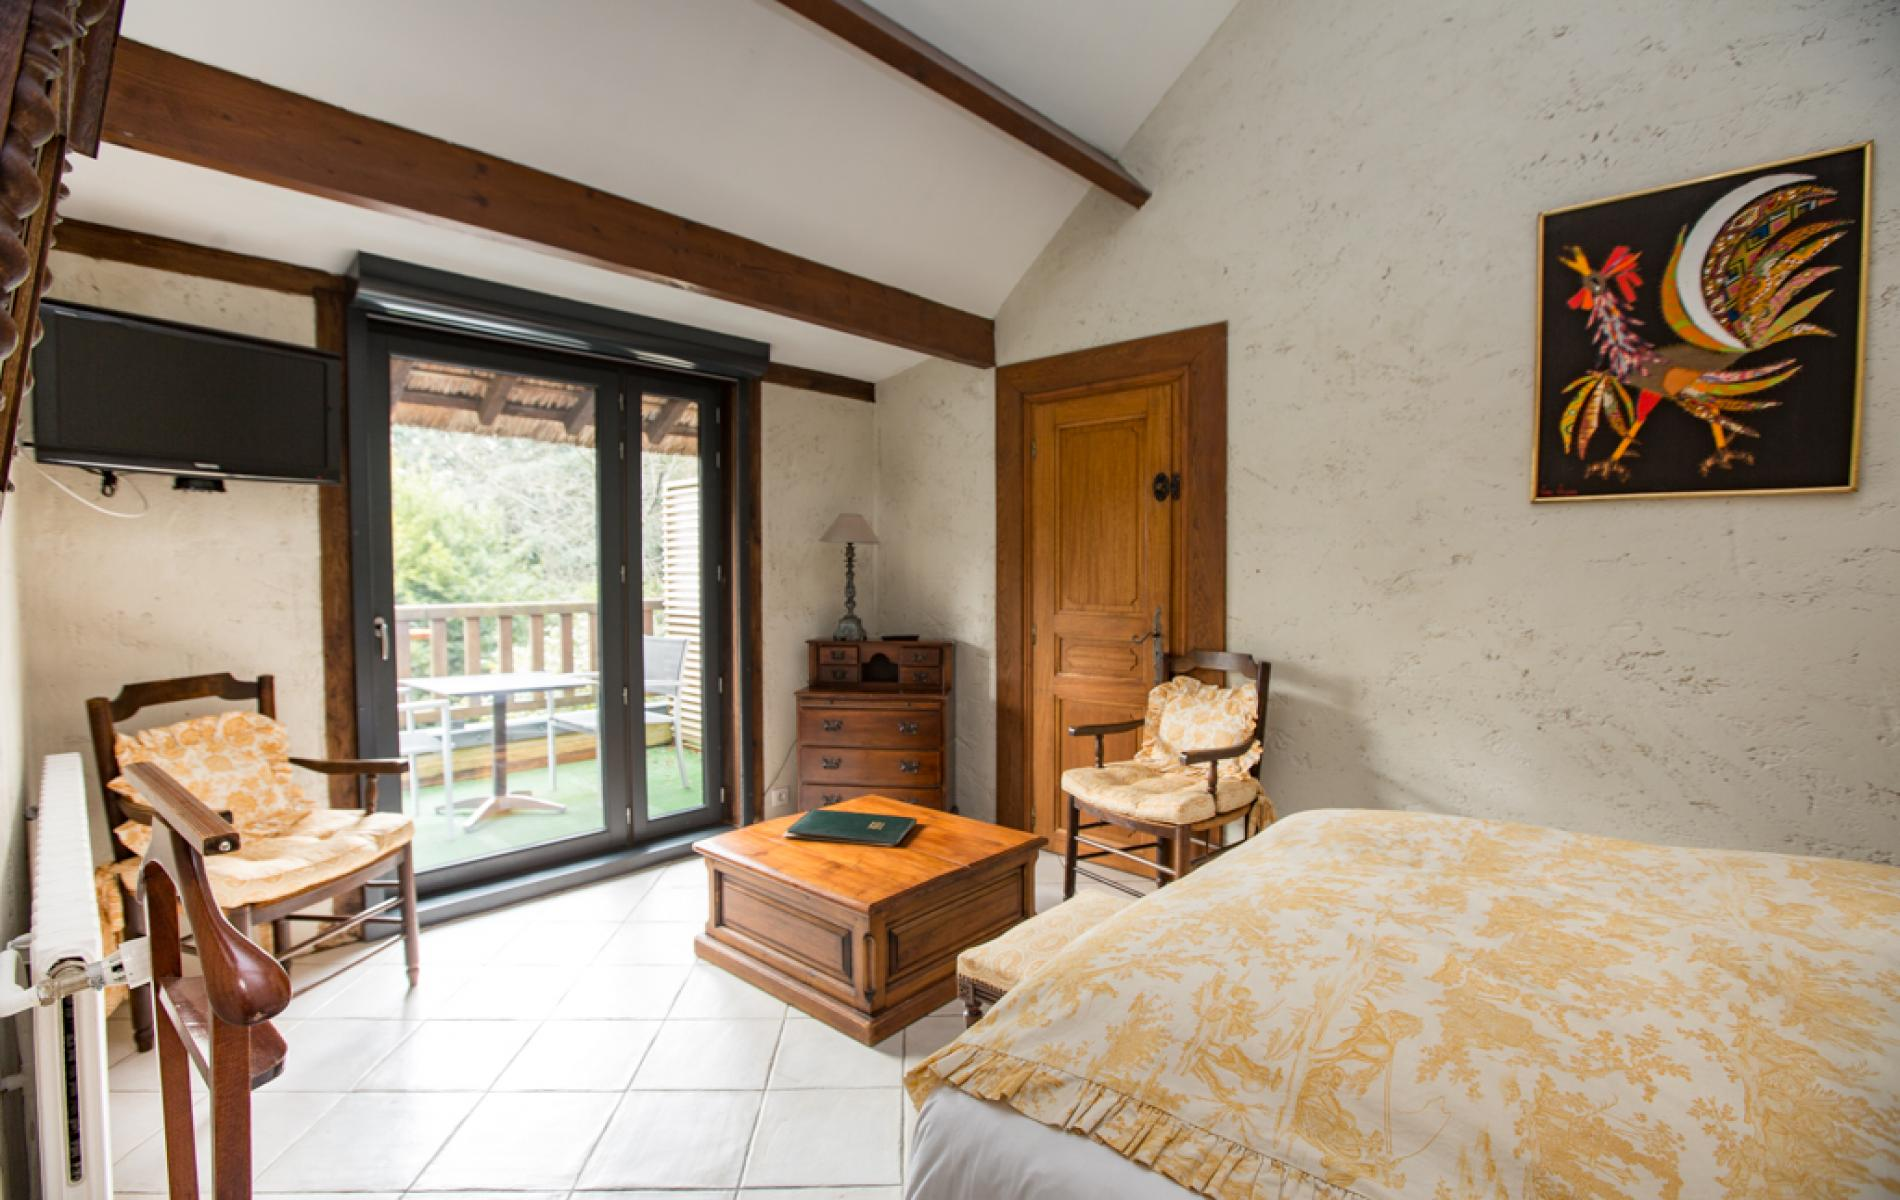 Rooms at Le Petit Coq aux Champs Hotel in Pont-Audemer